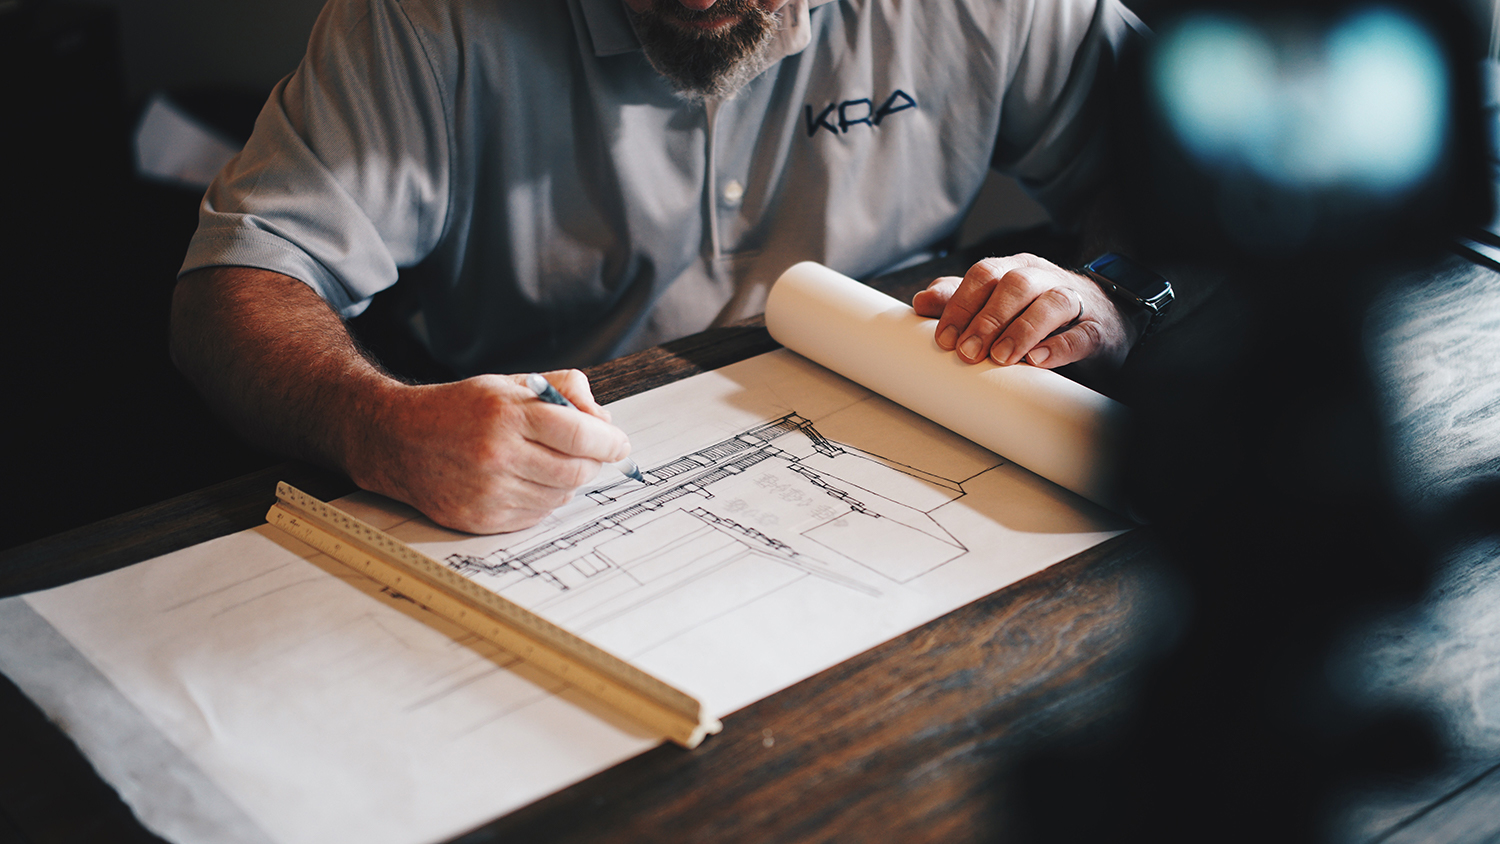 Male architect drawing plans